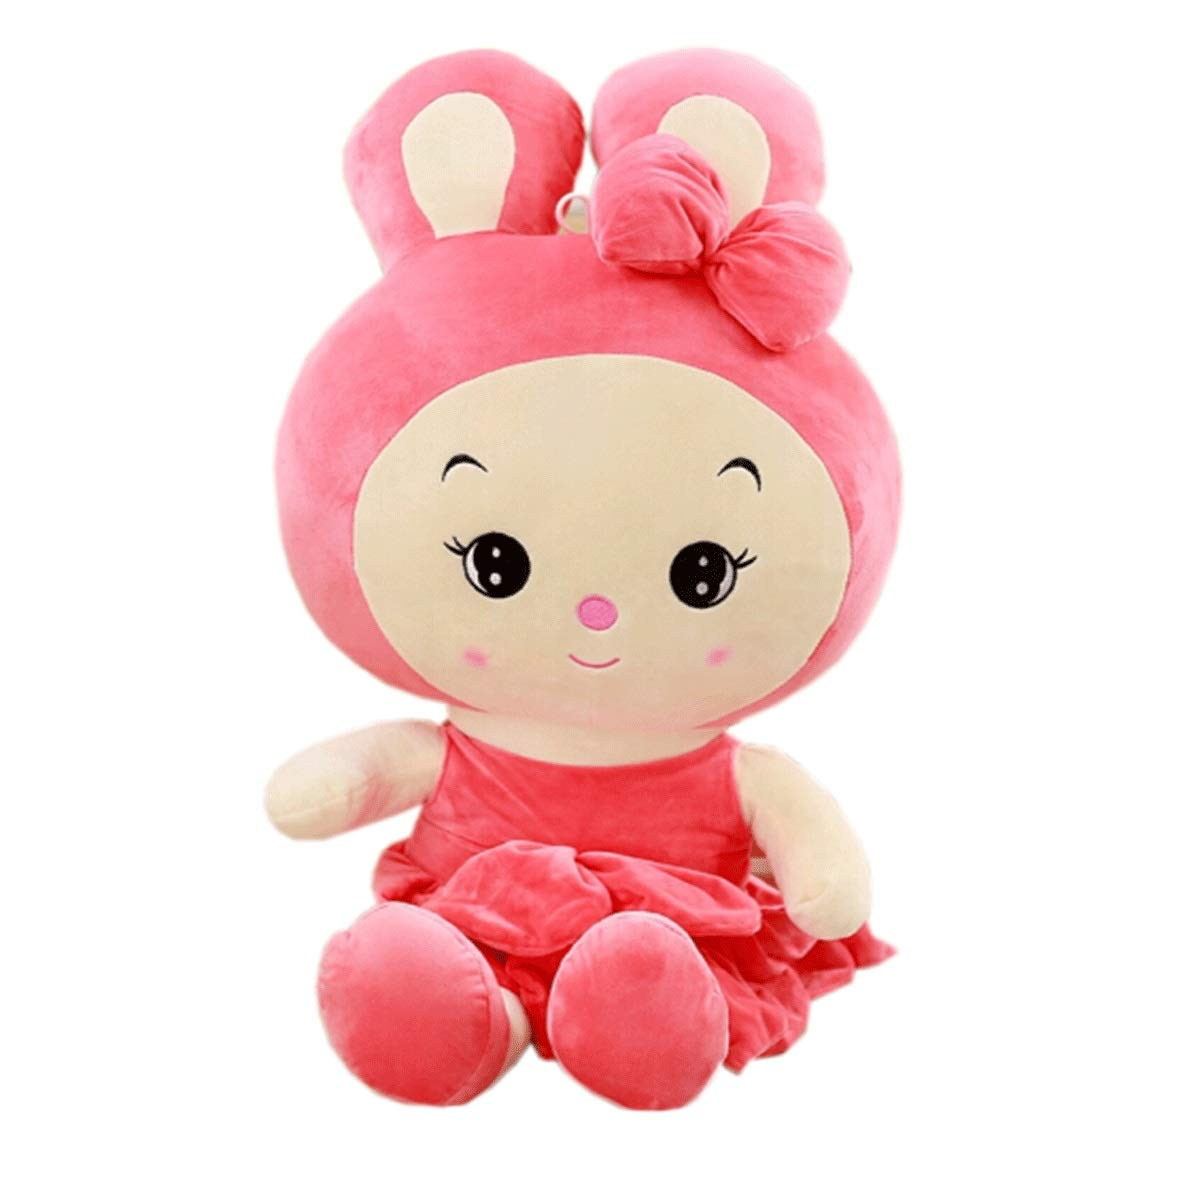 Pale pink 60cm Pale pink 60cm Plush Toy Rabbit, Doll Doll, Birthday Gift, Three colors, Multi-Size, Best Gift (color   Pale Pink, Size   60cm)